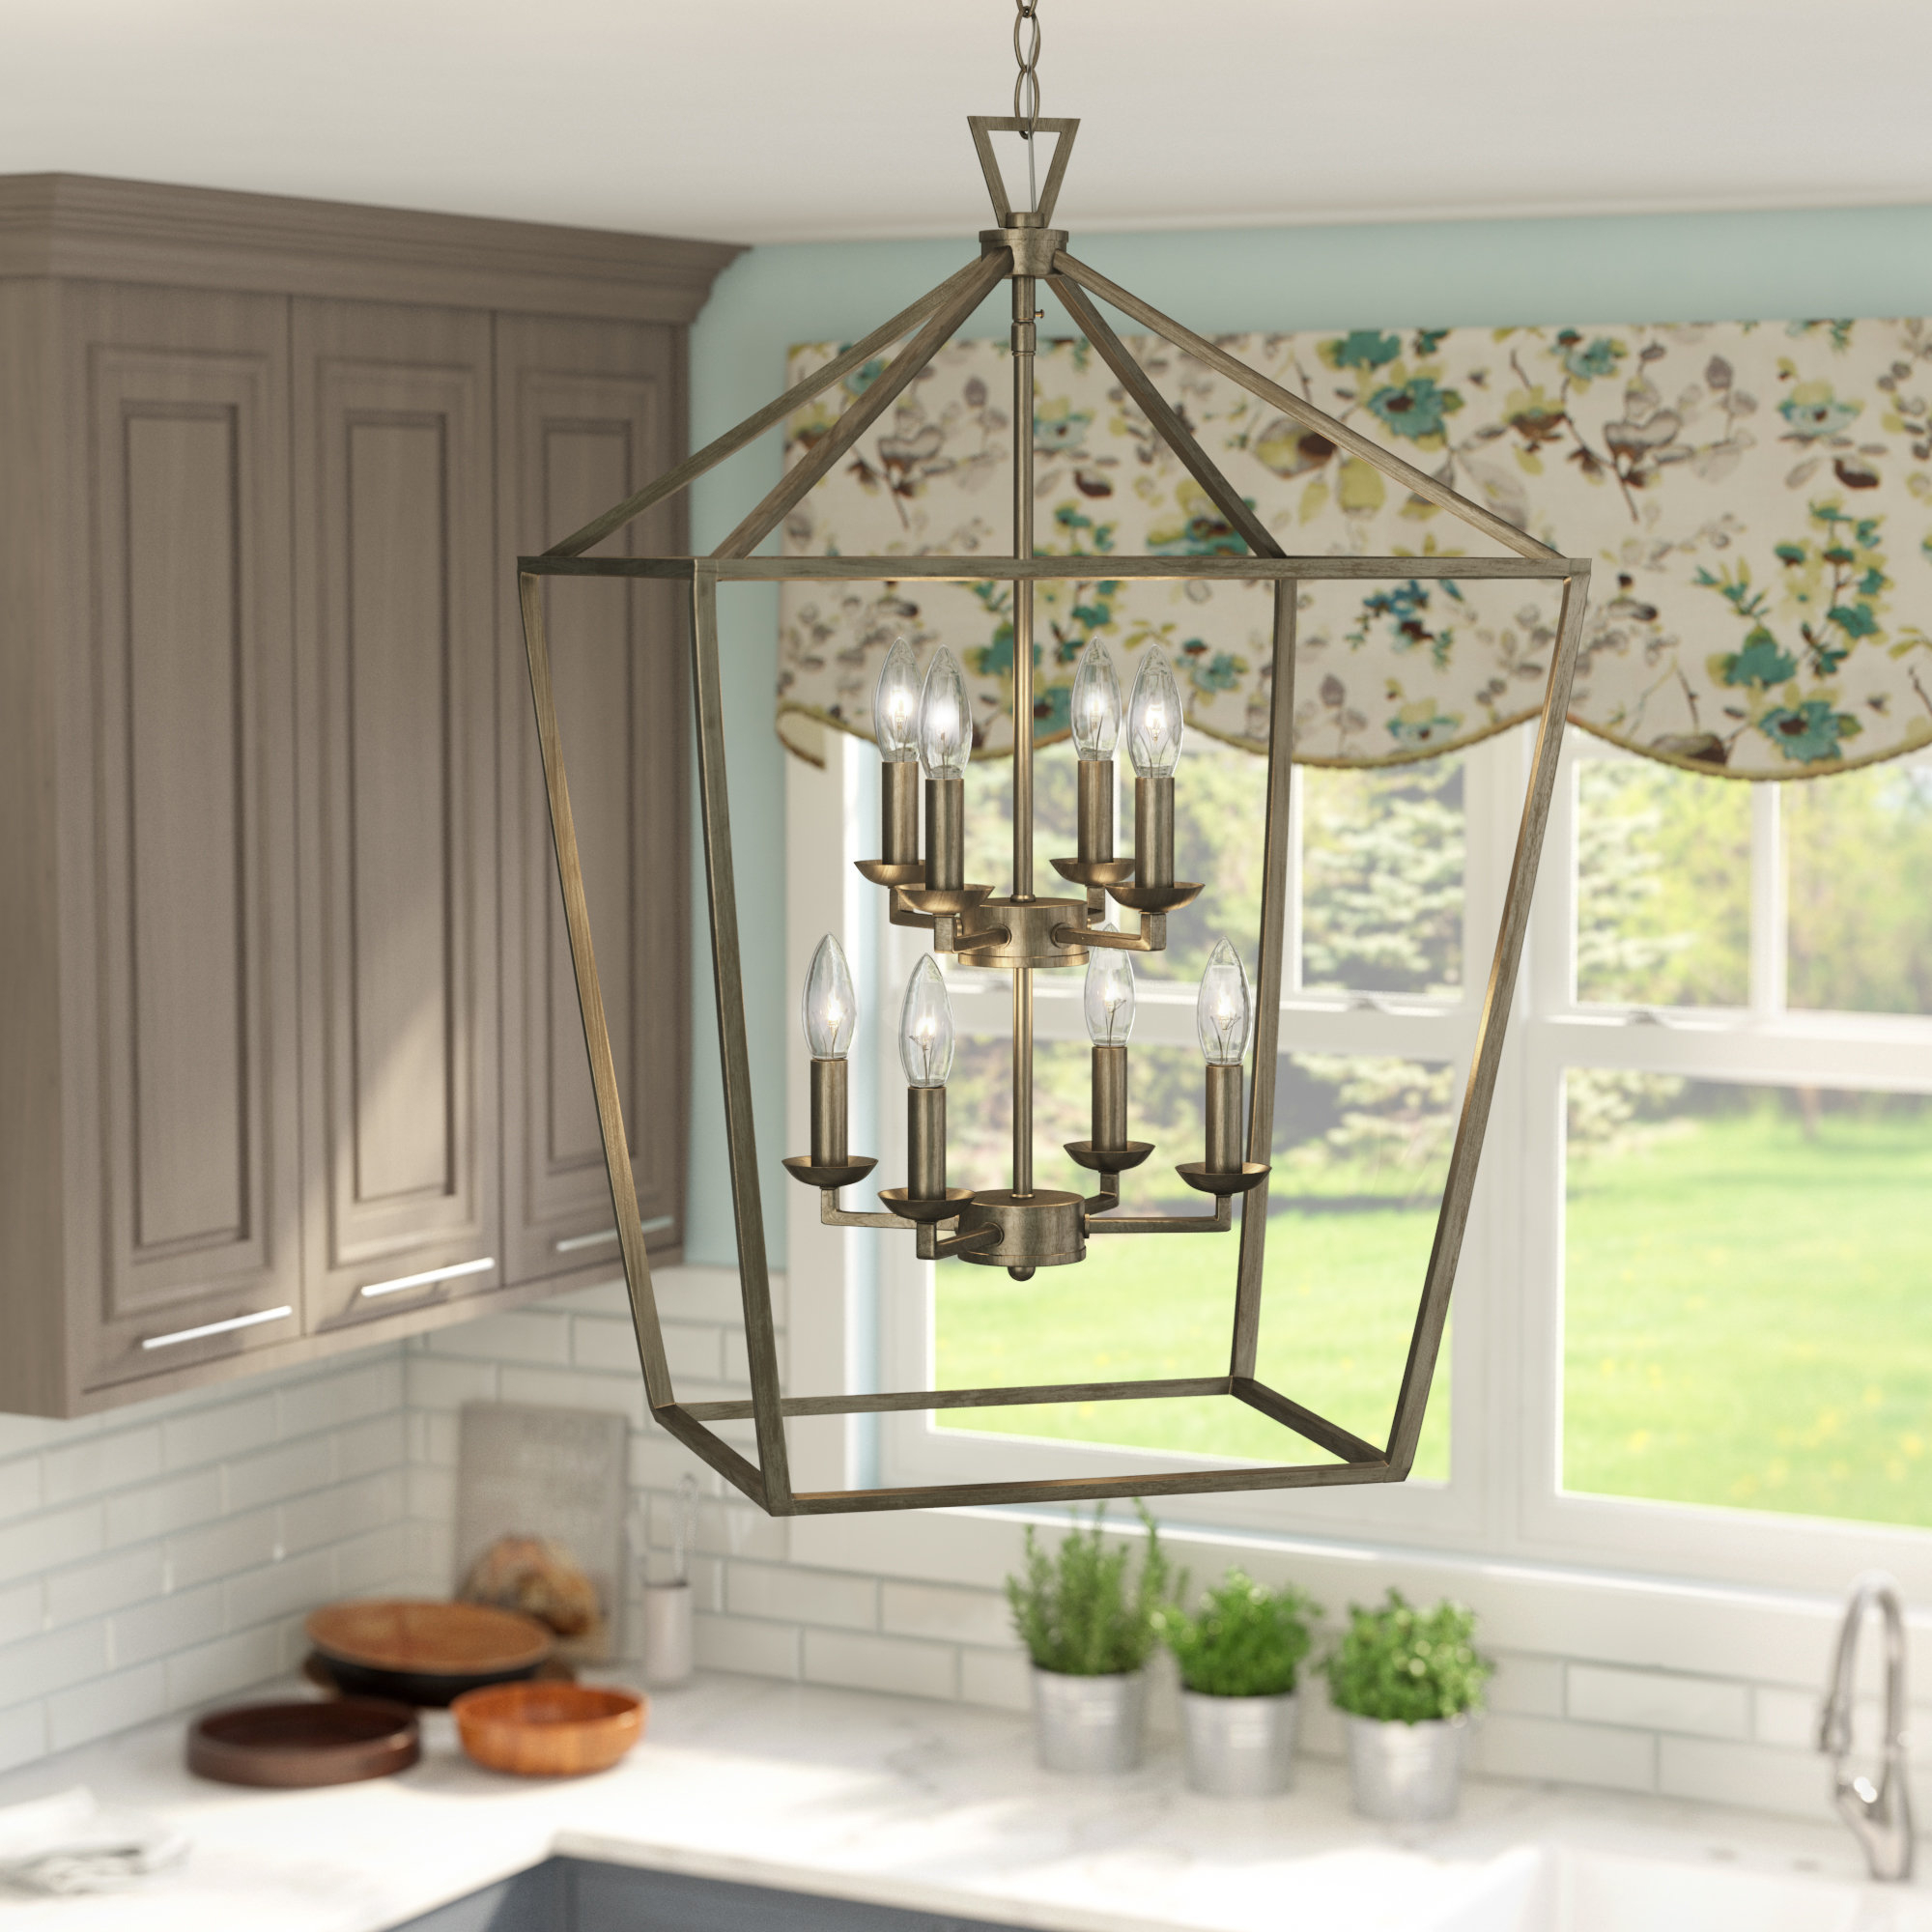 Wayfair Intended For Chauvin 3 Light Lantern Geometric Pendants (View 16 of 25)